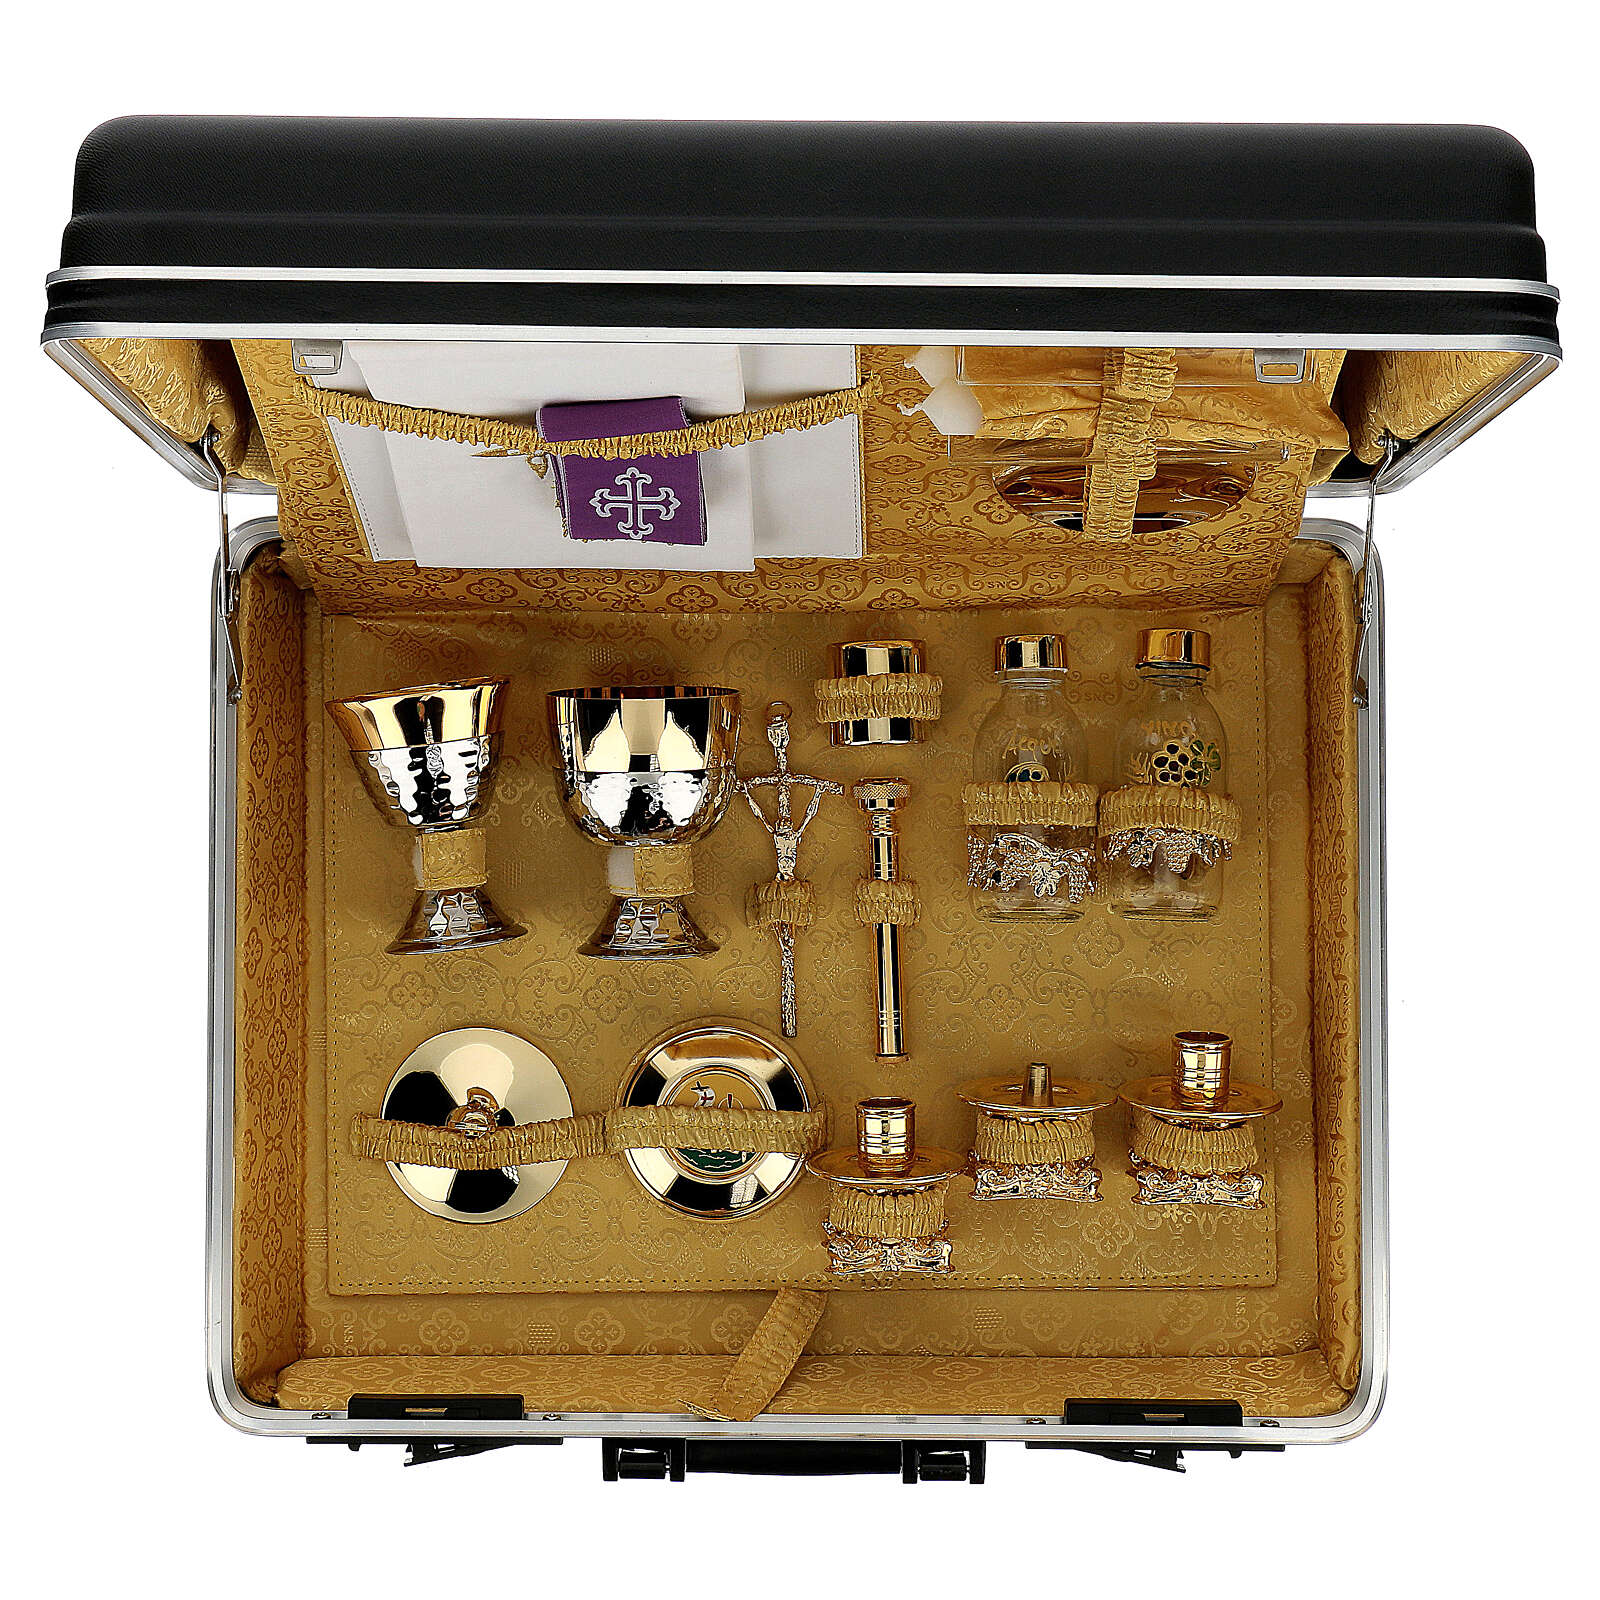 ABS mass kit briefcase with golden silk lining 3